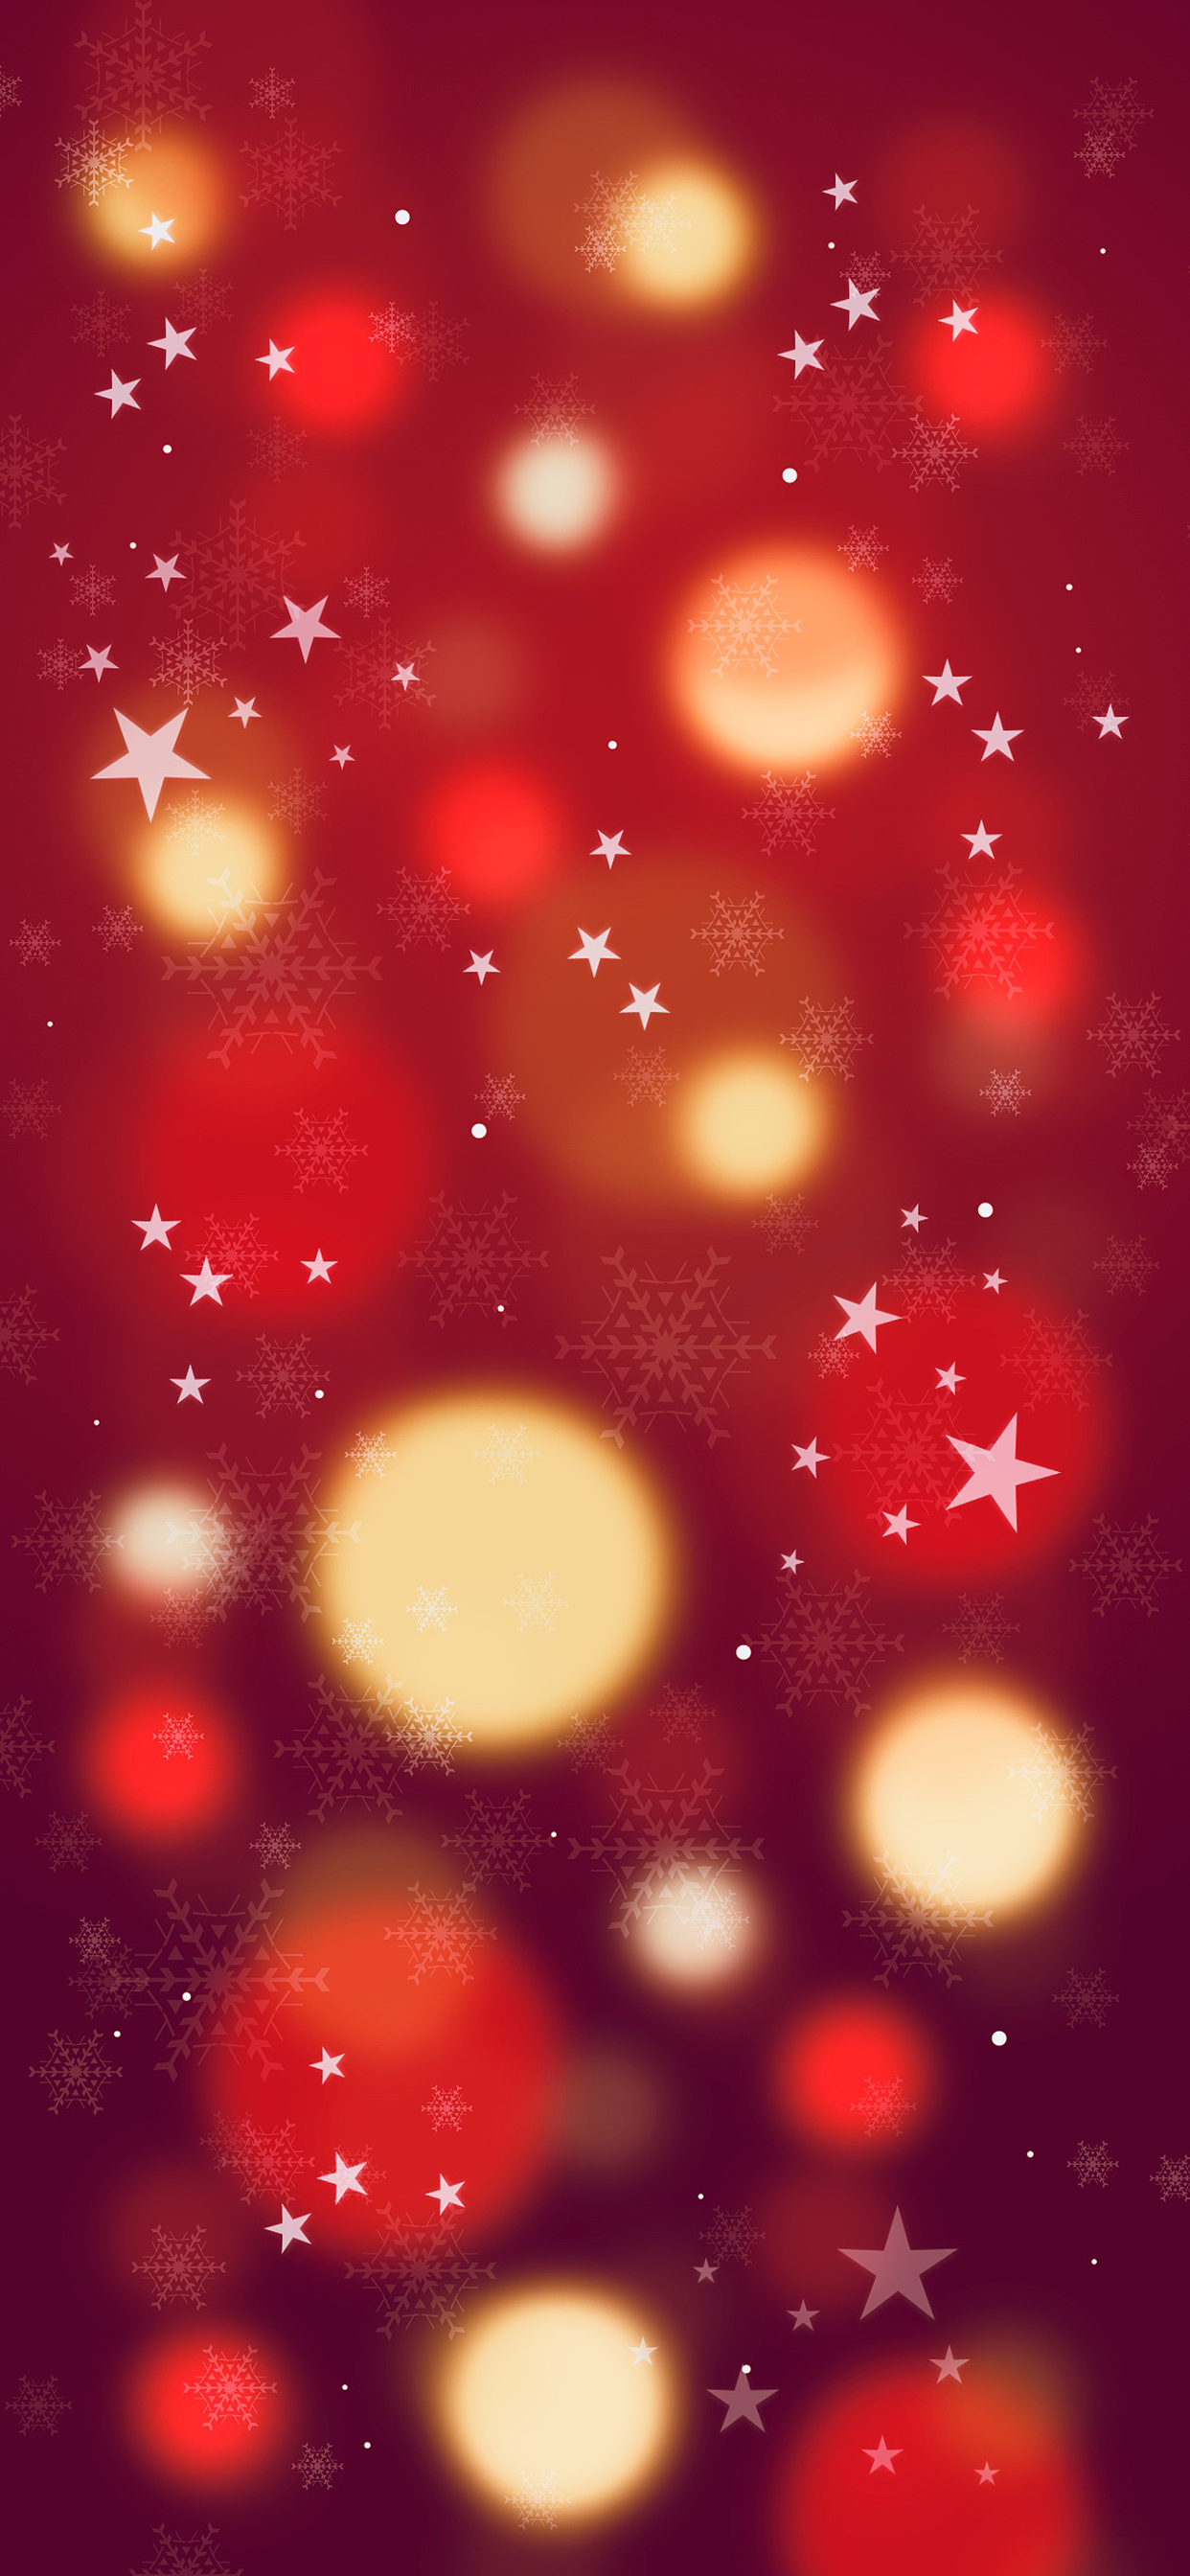 Red Christmas Iphone Wallpapers Top Free Red Christmas